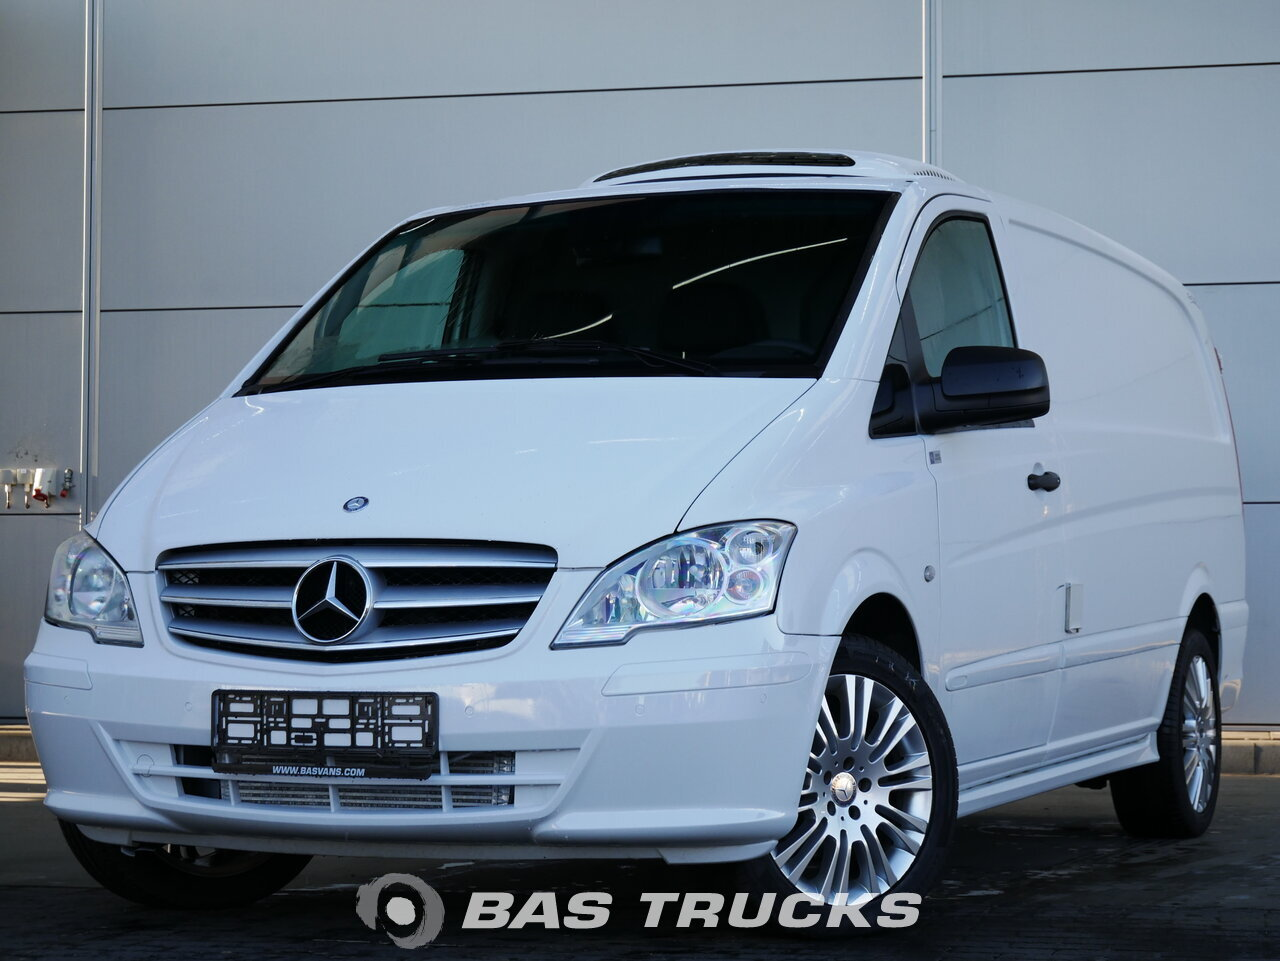 For sale at BAS Trucks: Mercedes Vito 01/2015